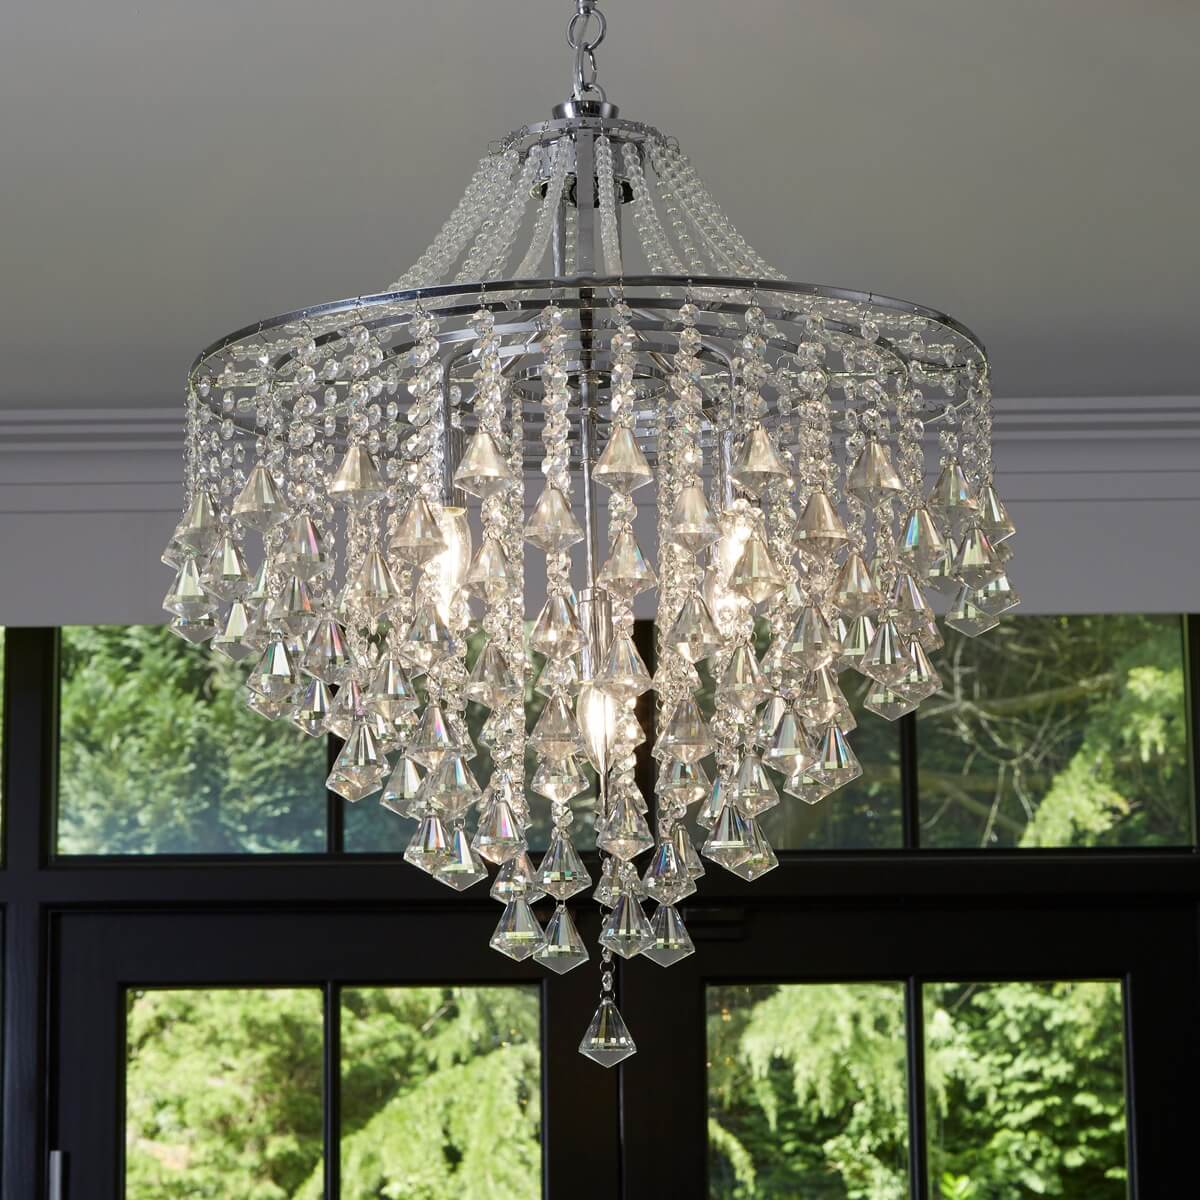 Dorchester 5 Light Ceiling Chrome With Clear Crystal